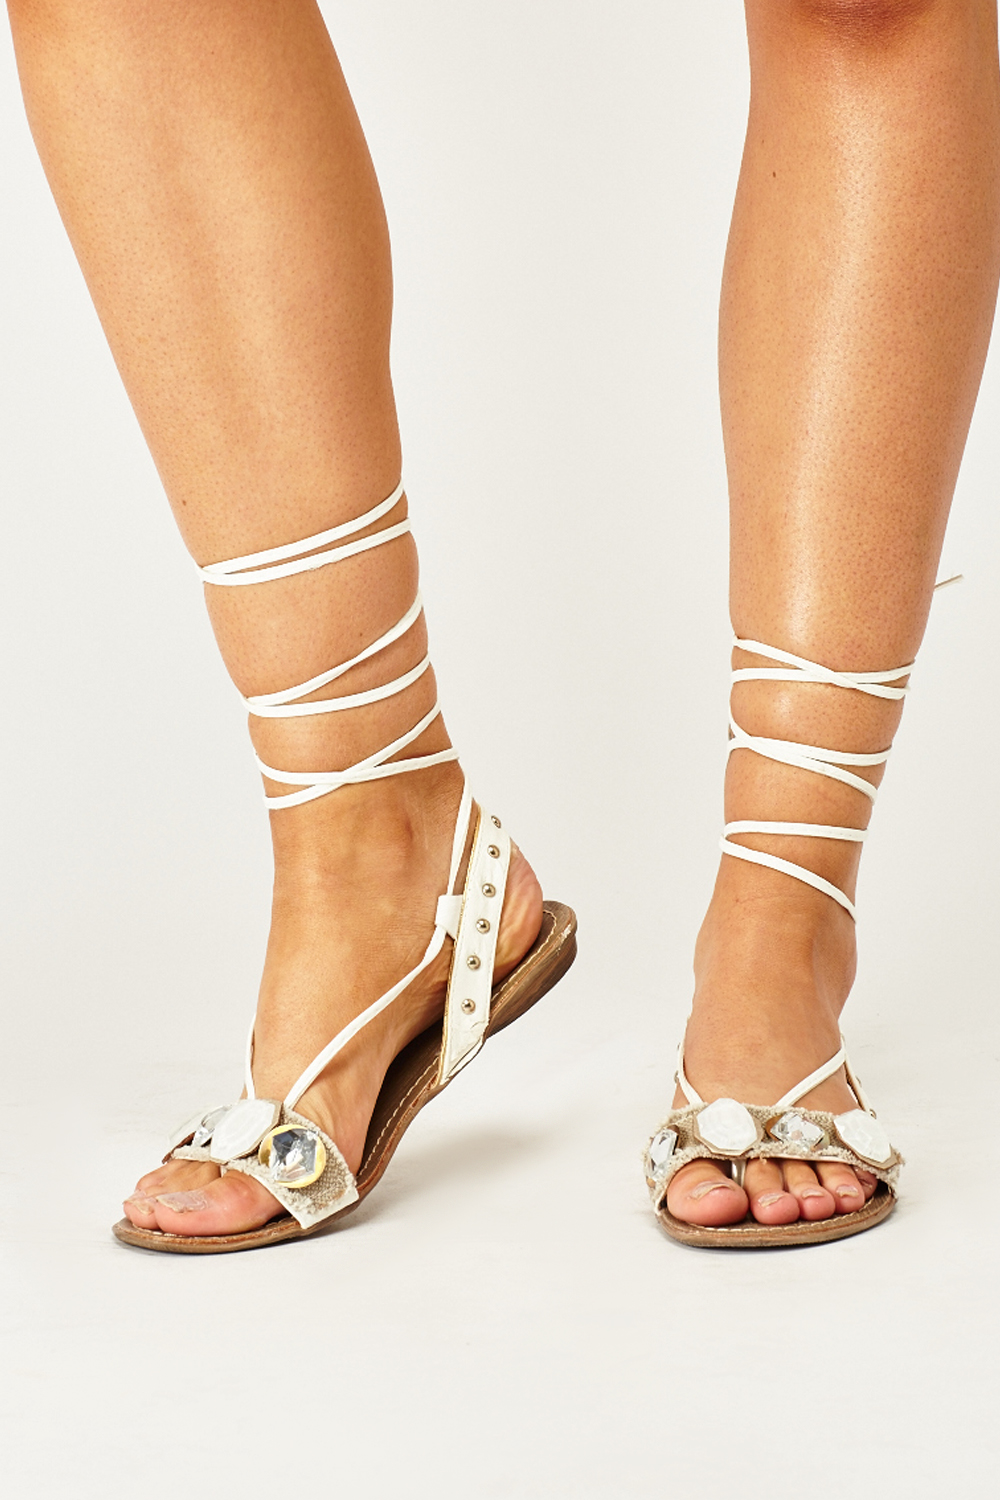 Embellished Lace Up Flat Sandals - White - Just £5